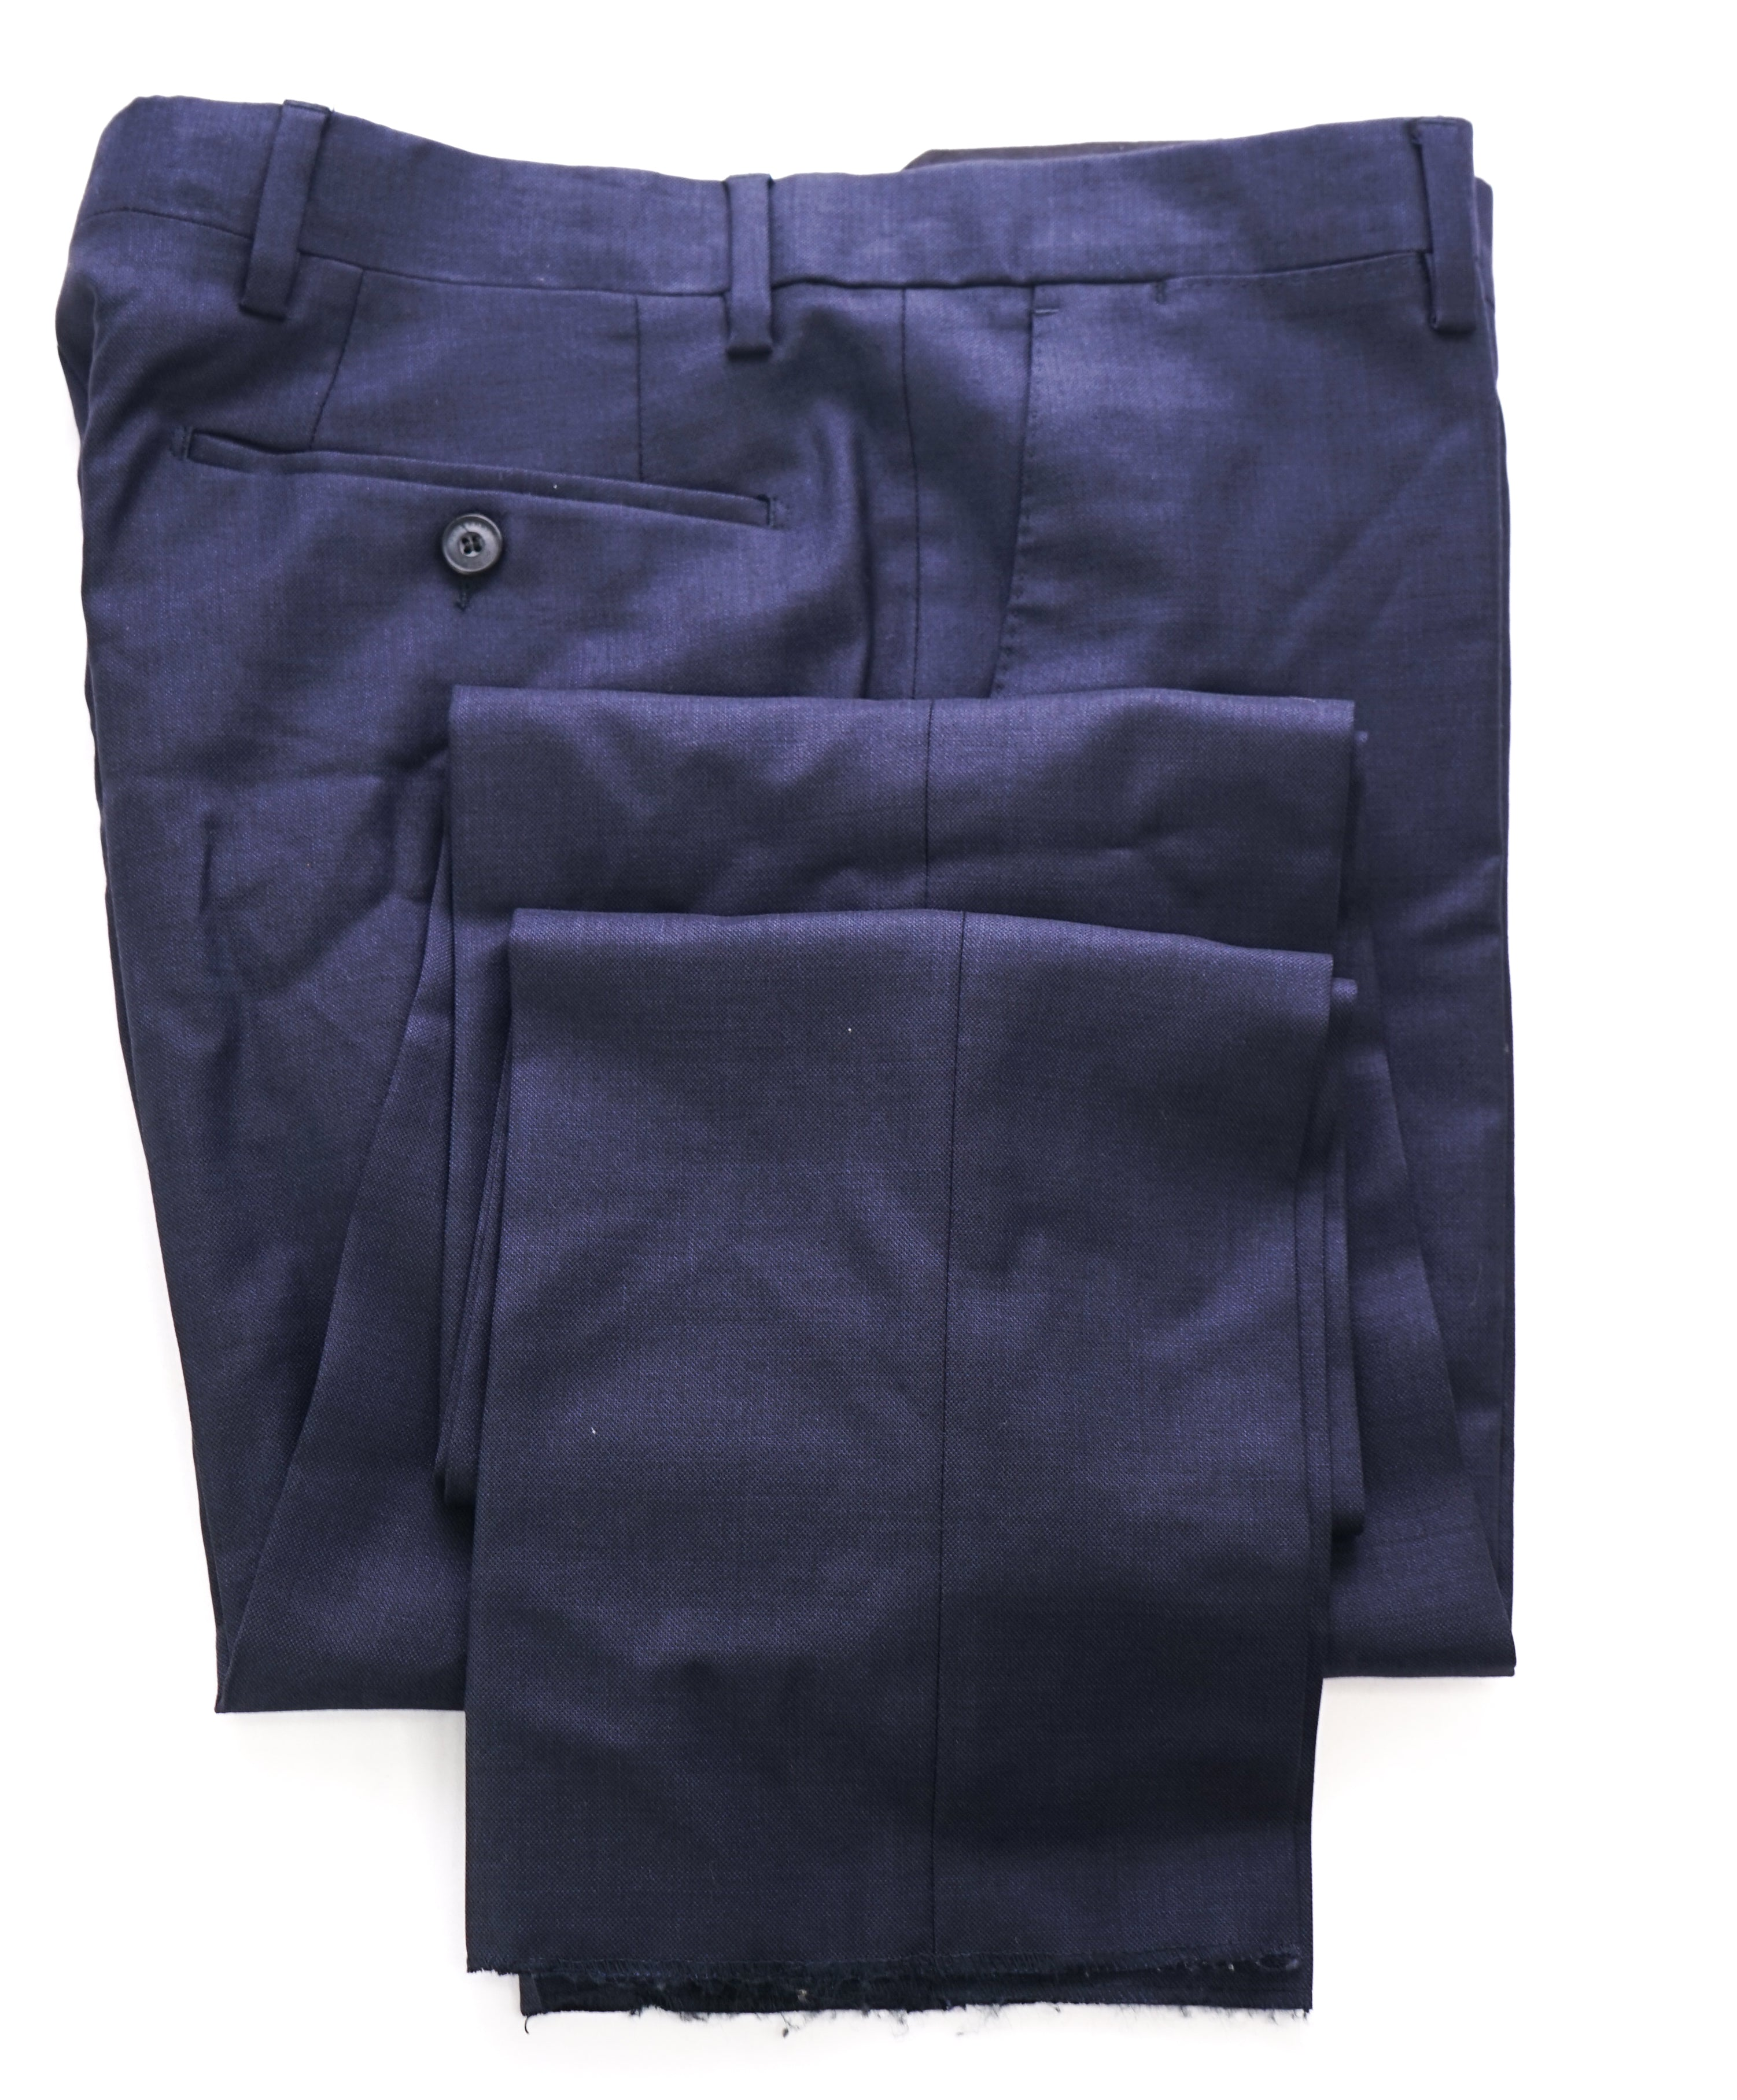 BURBERRY LONDON - Made in Italy Blue Flat Front Dress Pants - 31W